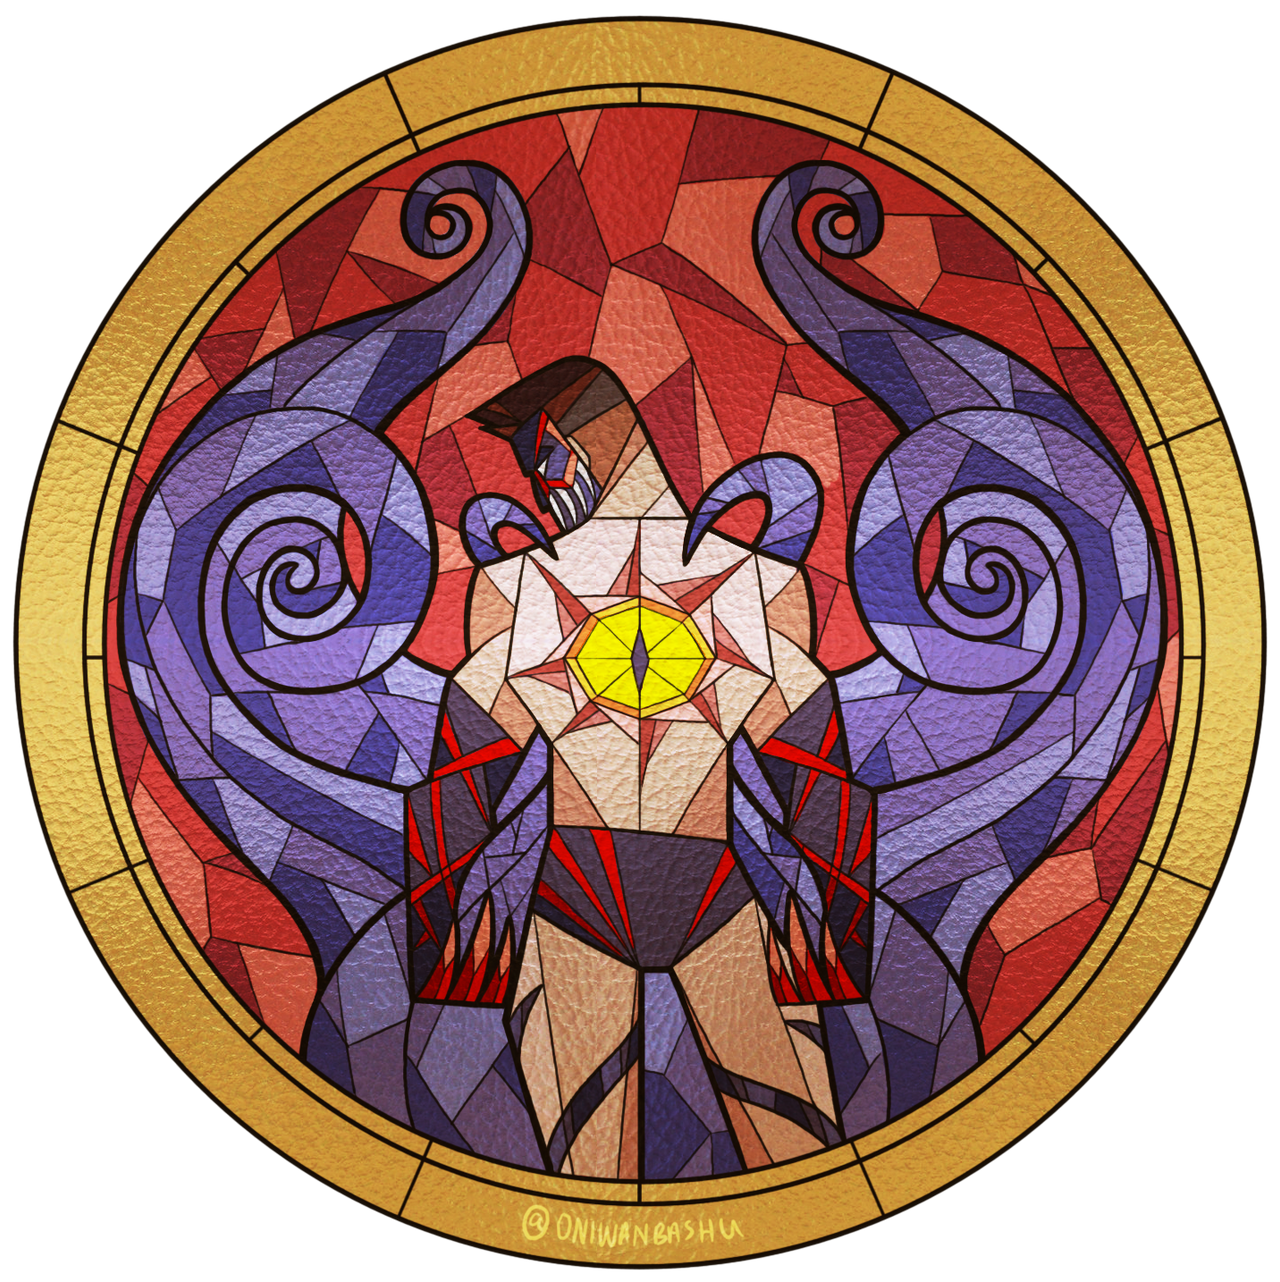 wwe__dancing_with_demons_by_oniwanbashu-daym89d.png